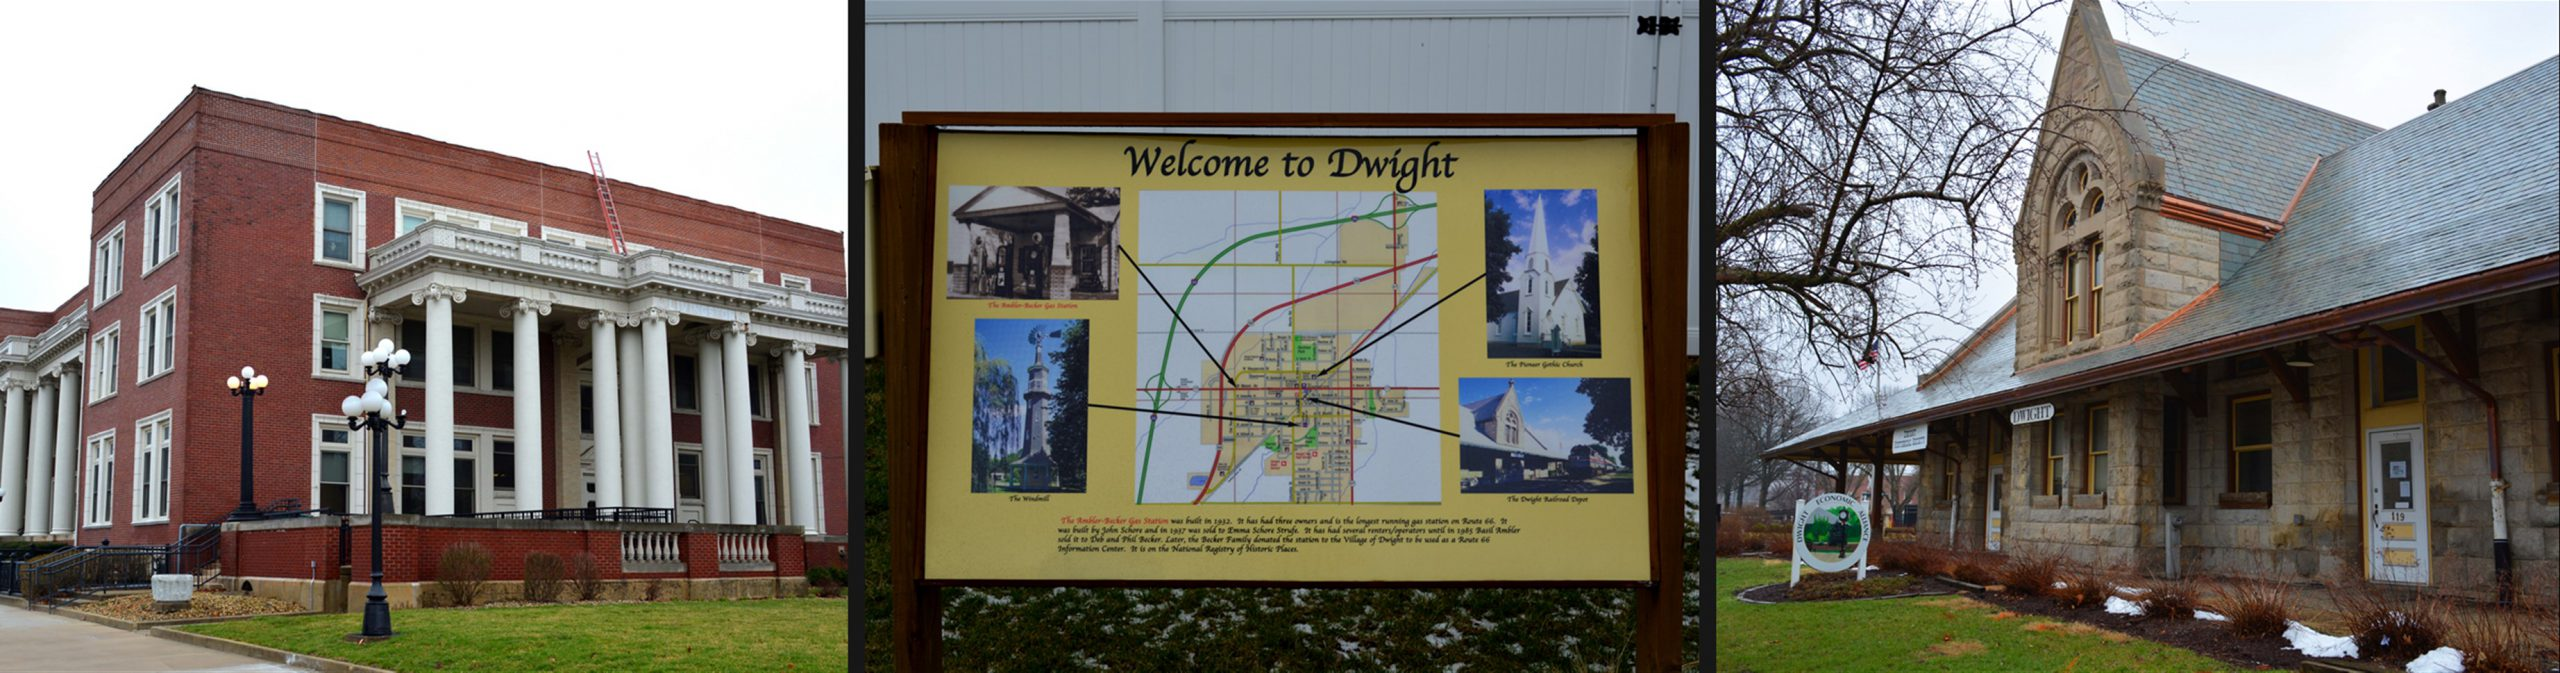 Dwight Illinois Attractions: Historic Keeley Institute, Welcome to Dwight Map, and Train Depot Museum